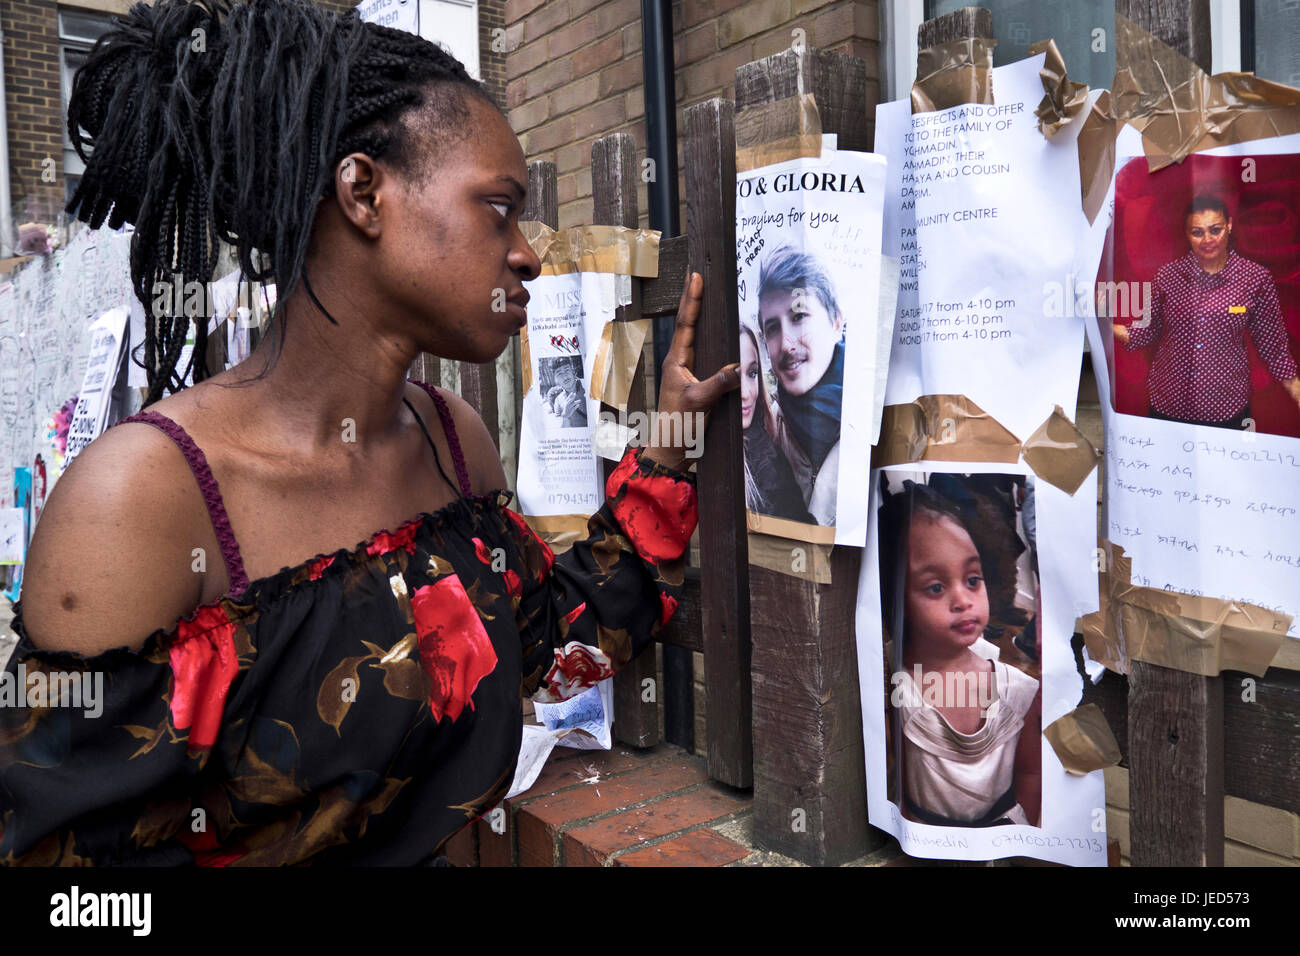 Dami went to school with and knew many of those missing/dead in the fire that destroyed the 24-story Grenfell Tower - Stock Image